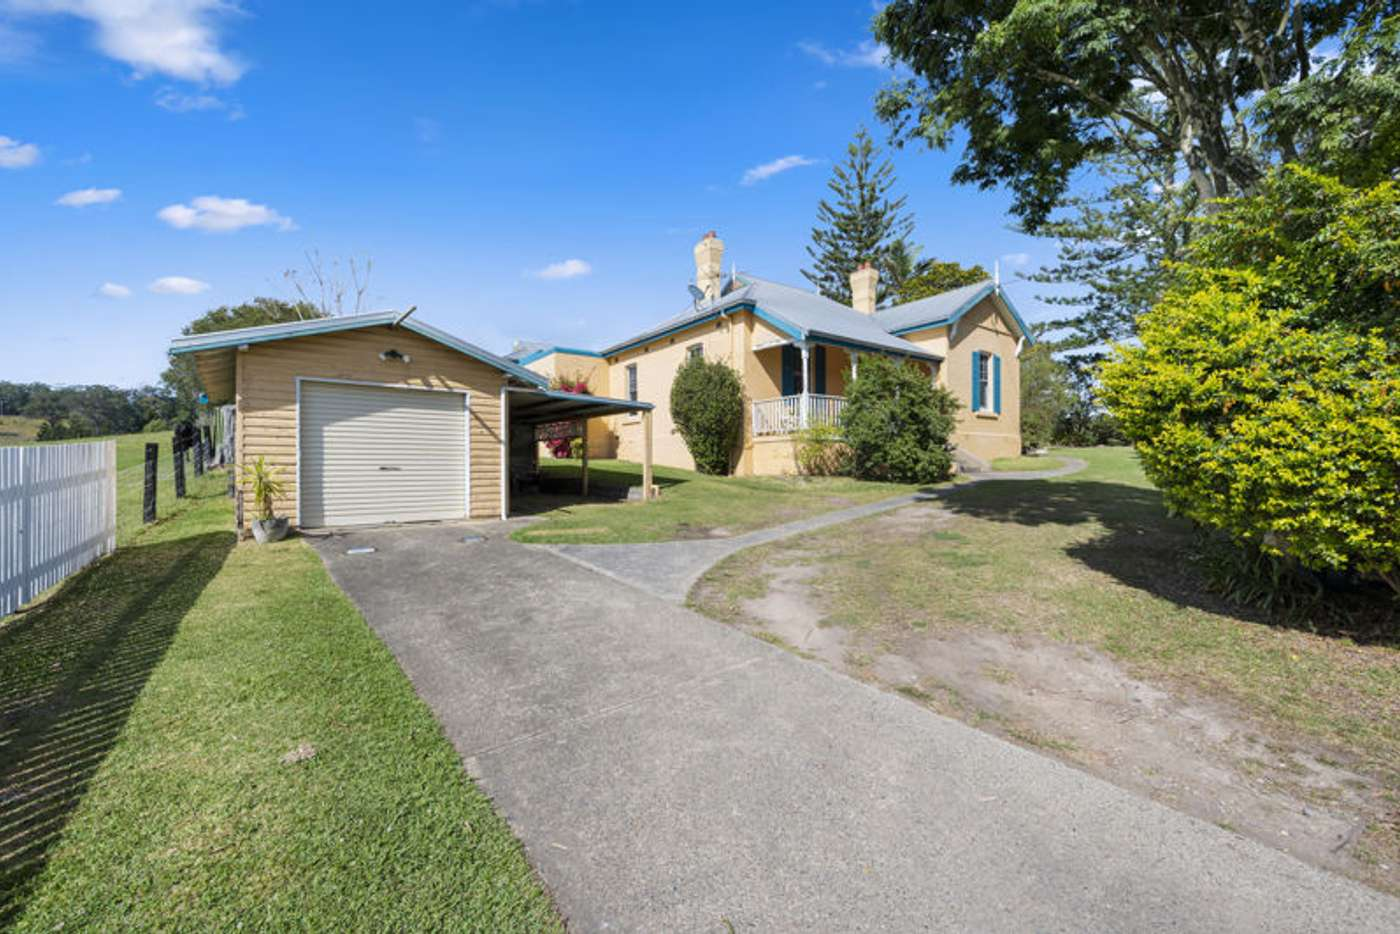 Main view of Homely house listing, 647 Waterfall Way, Bellingen NSW 2454